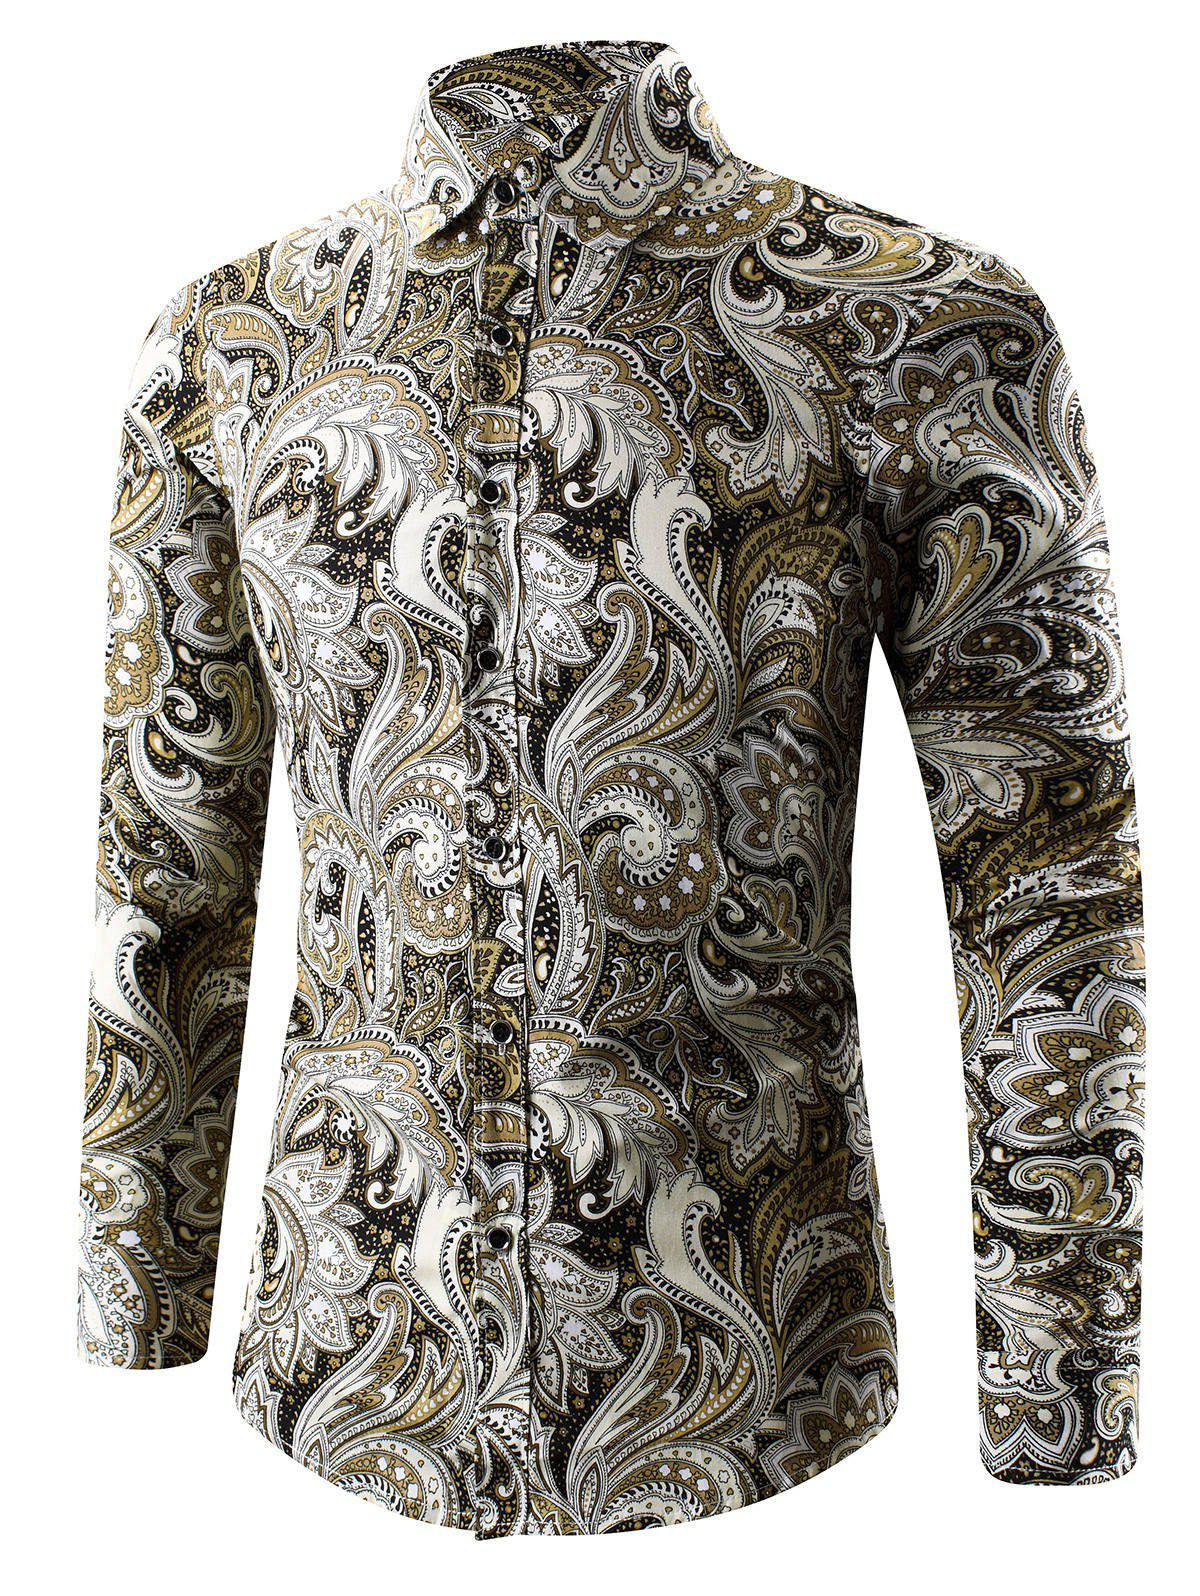 3D Paisley Printed Turn-Down Collar Shirt - YELLOW XL